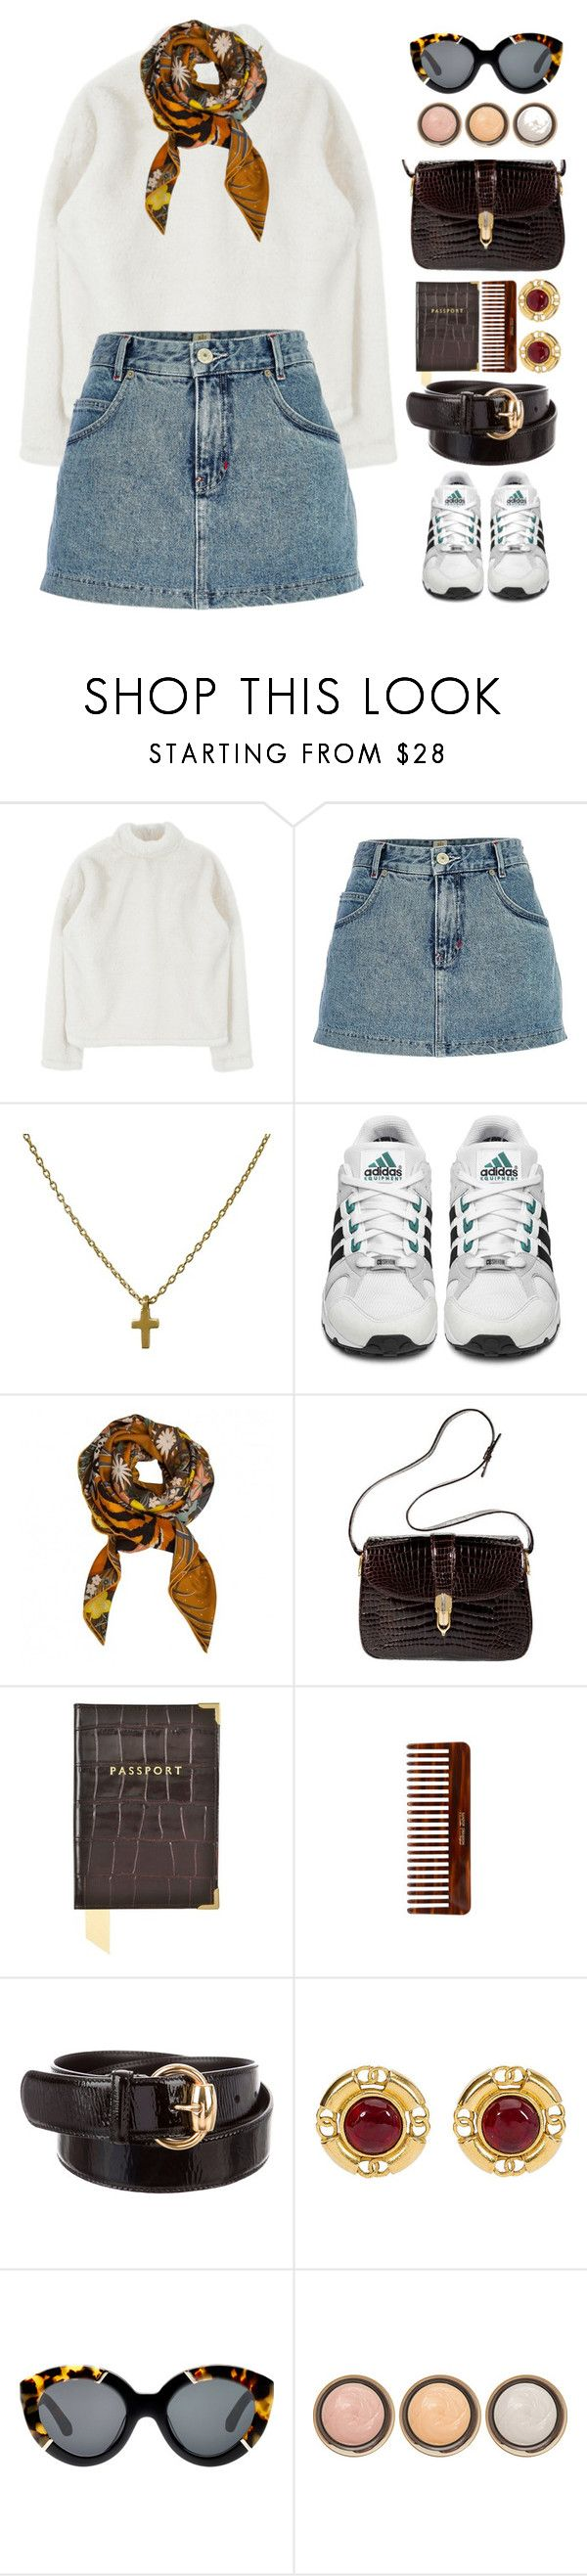 """Untitled #394"" by mathildejohannessen ❤ liked on Polyvore featuring River Island, adidas Originals, Hermès, Gucci, Aspinal of London, (MALIN+GOETZ), Karen Walker and By Terry"